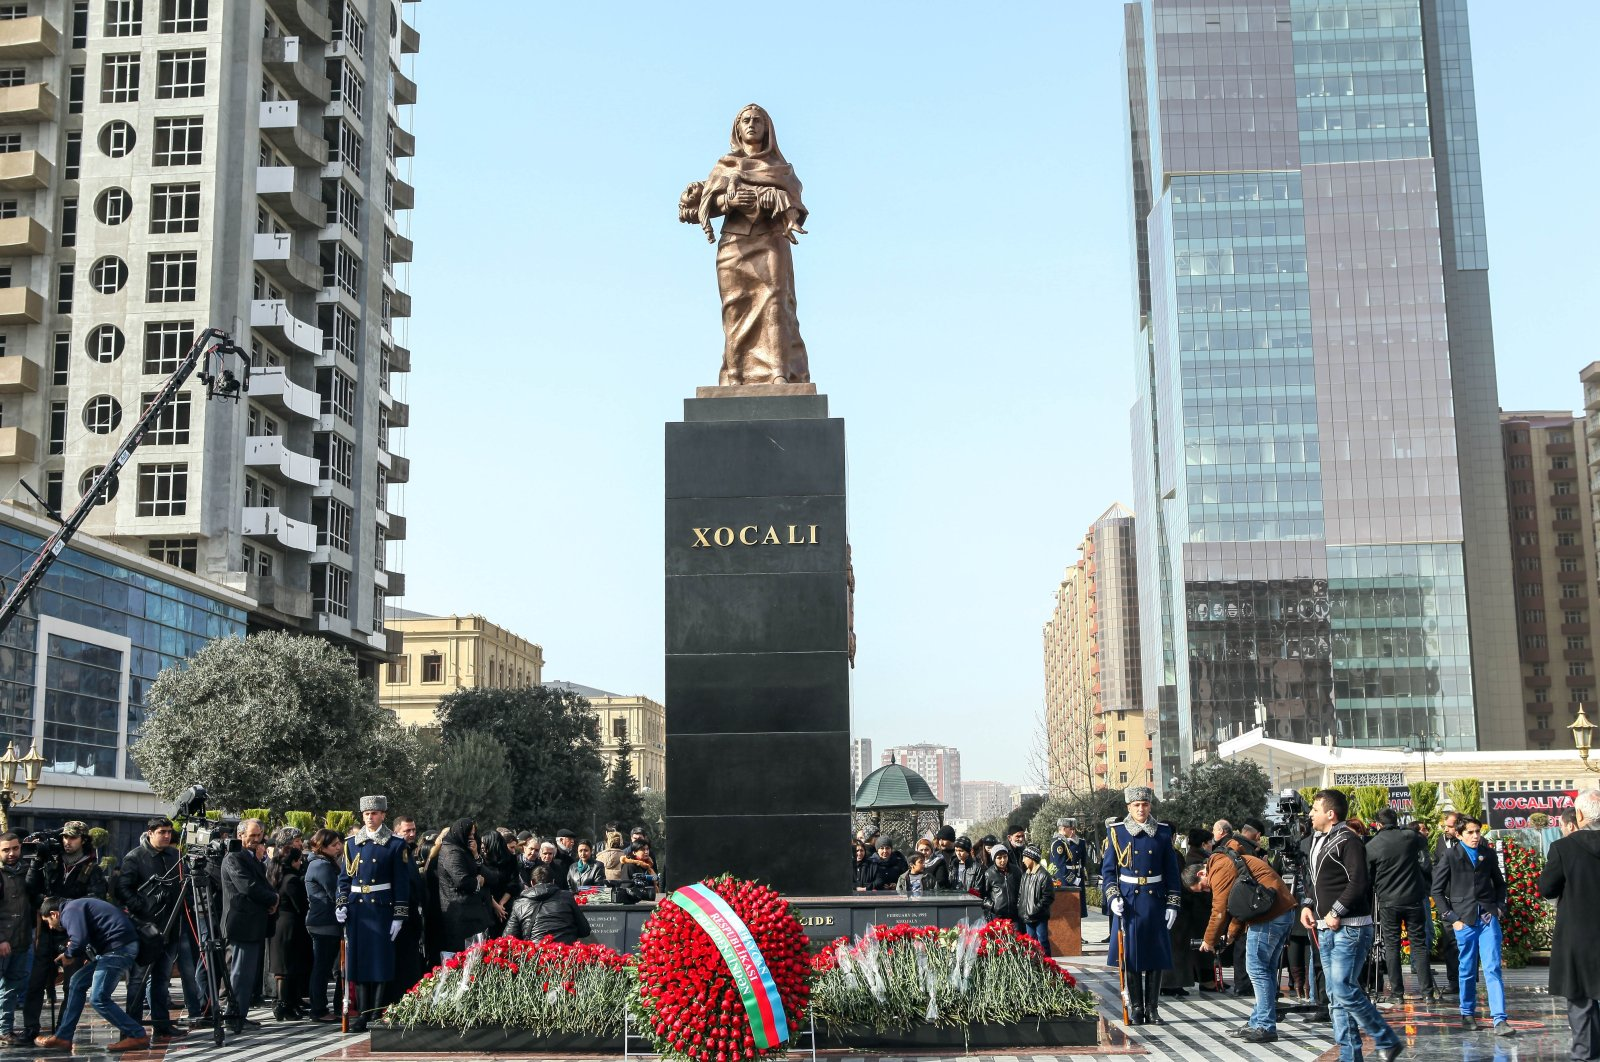 Azerbaijani citizens commemorate the Khojaly Massacre's anniversary by bringing flowers to the Cry of the Mother Monument erected in honor of the massacre victims in the capital Baku, Azerbaijan, Feb. 26, 2017. (Photo by Shutterstock)